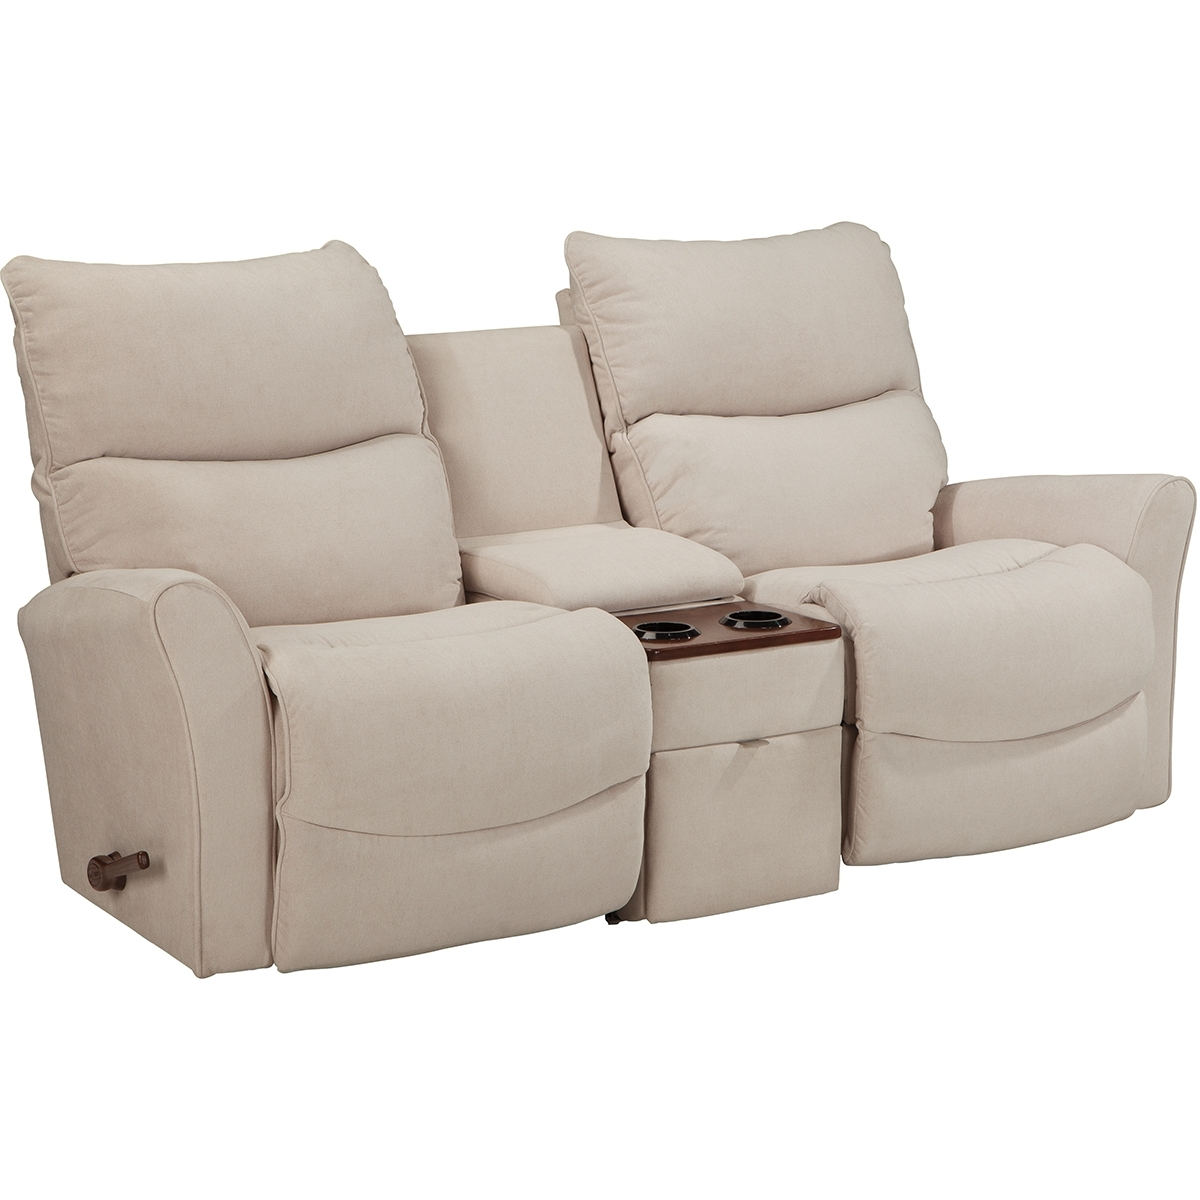 Sectional Sofas & Sectional Couches | La Z Boy Pertaining To Lazy Boy Sectional Sofas (View 3 of 10)